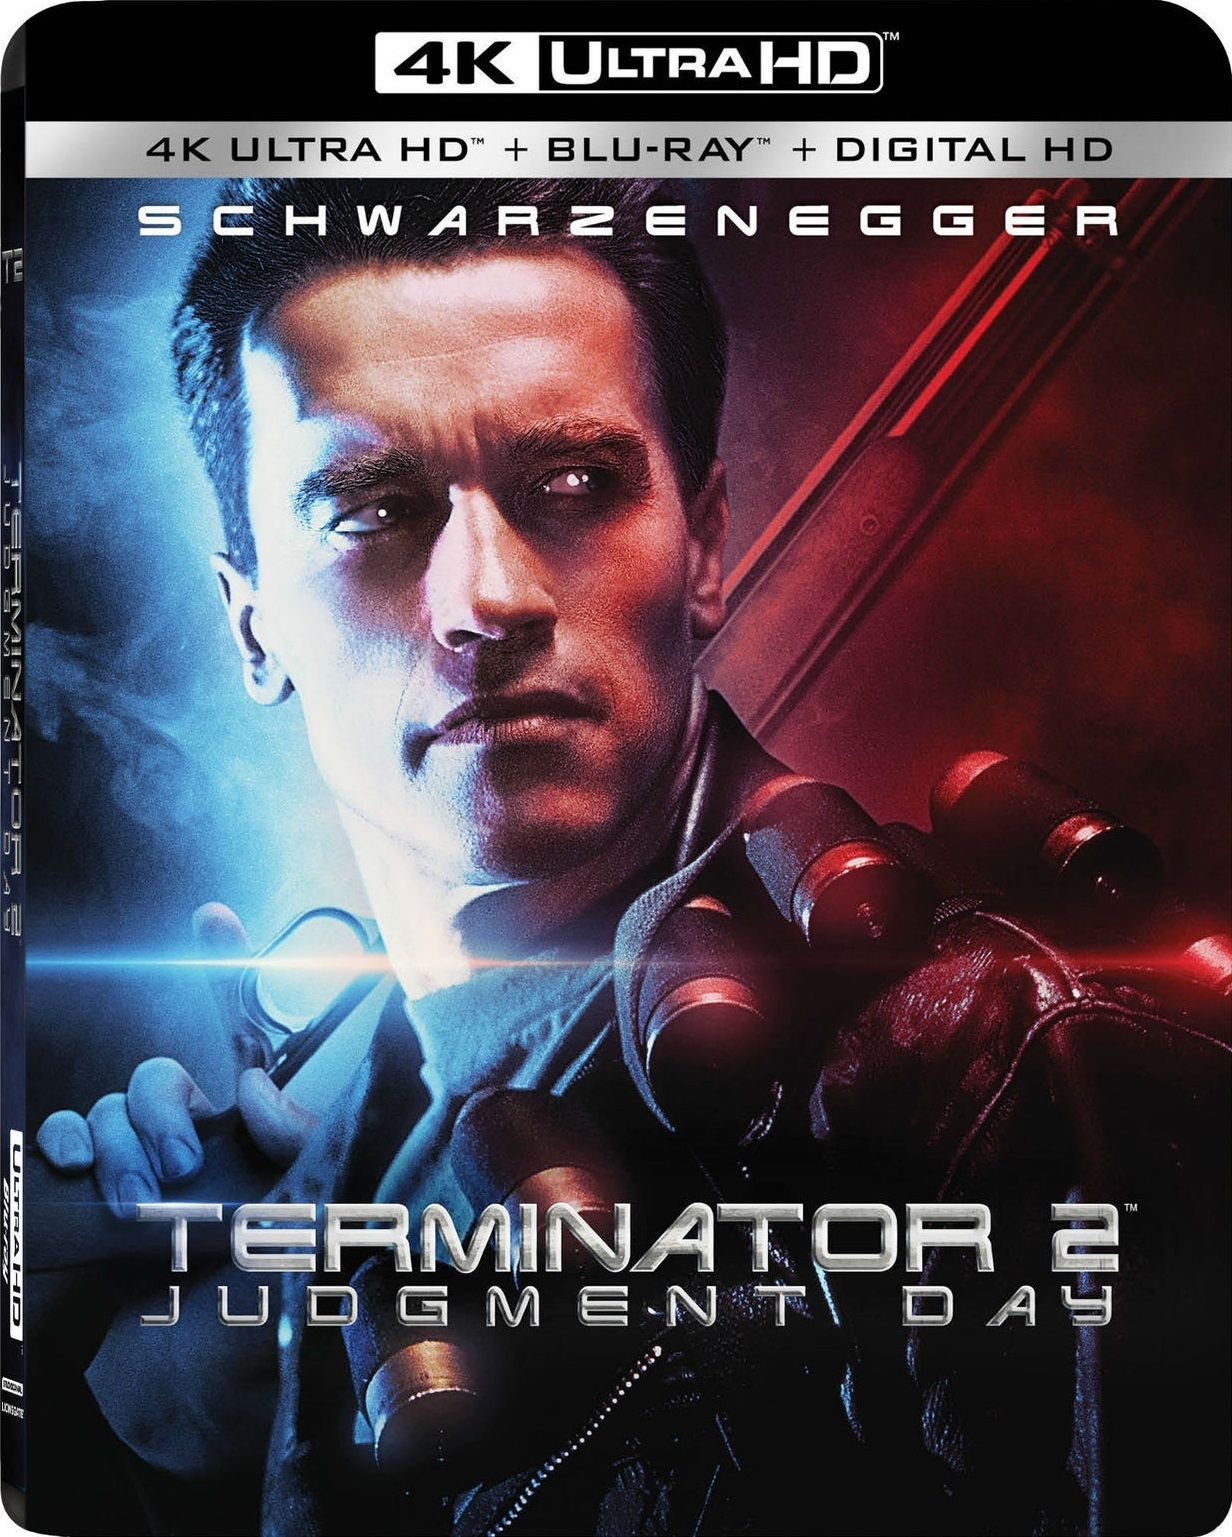 Terminator 2 judgement day putlocker